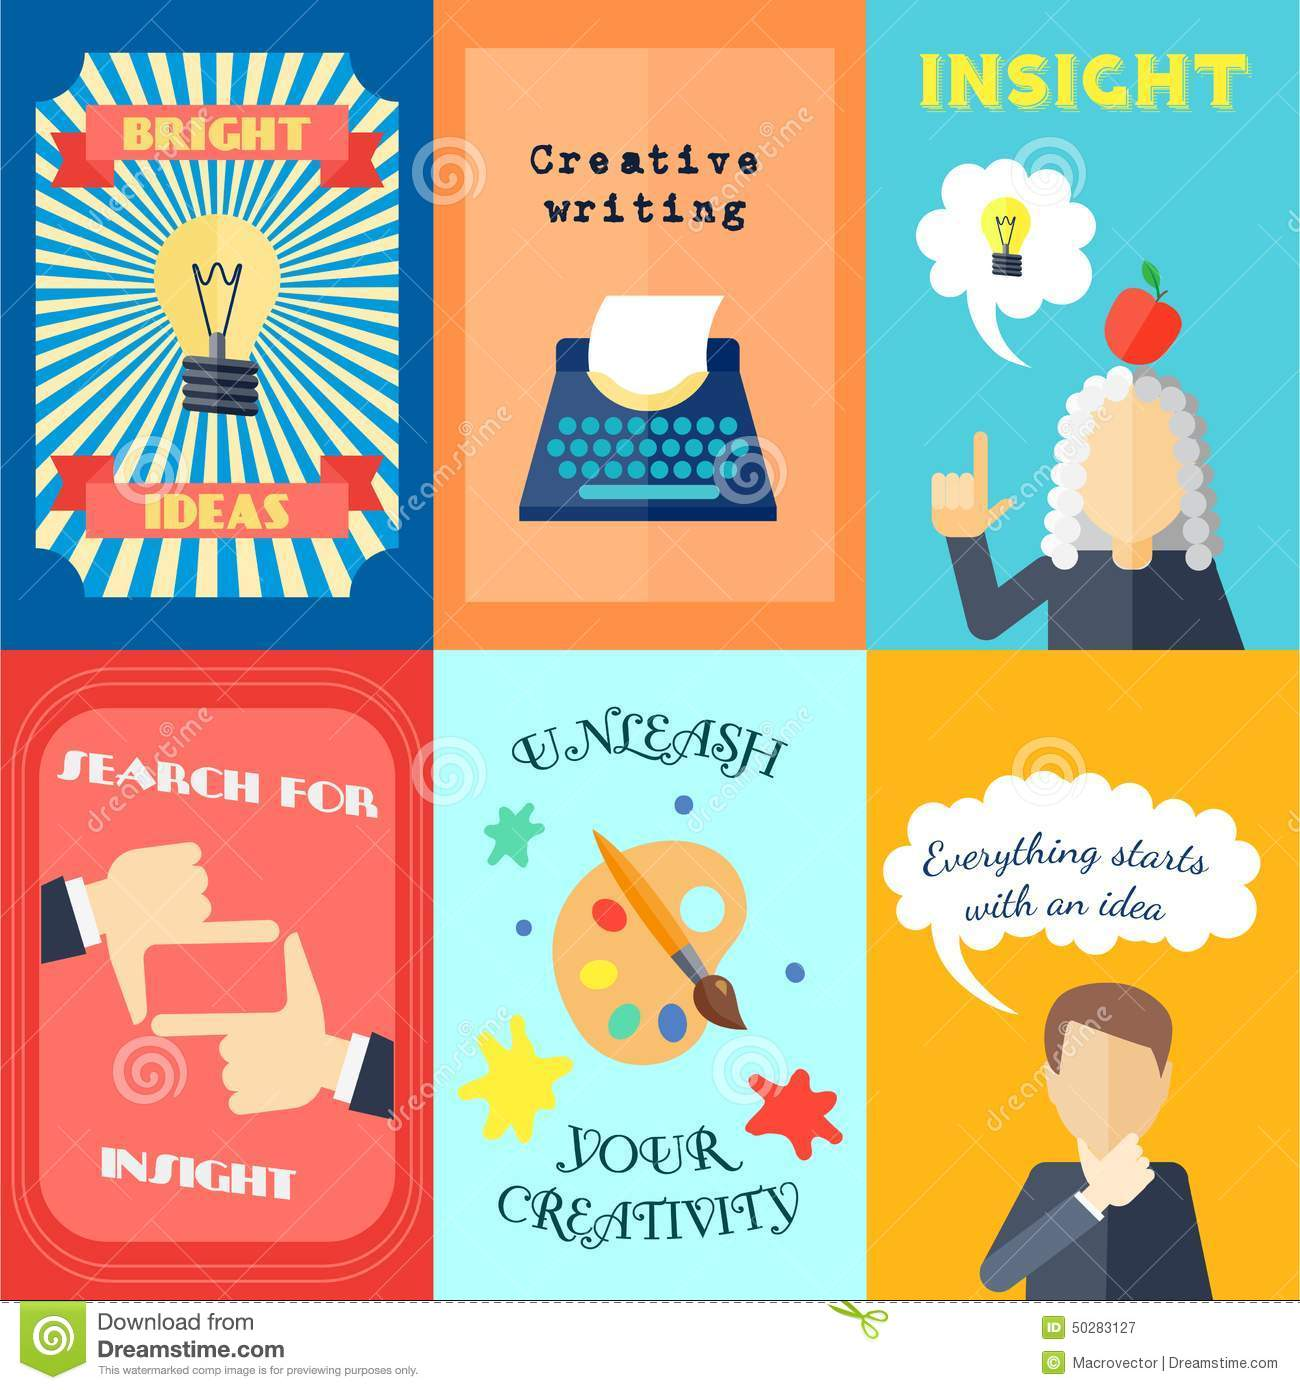 Muse bright ideas creative writing and insights mini poster set ...